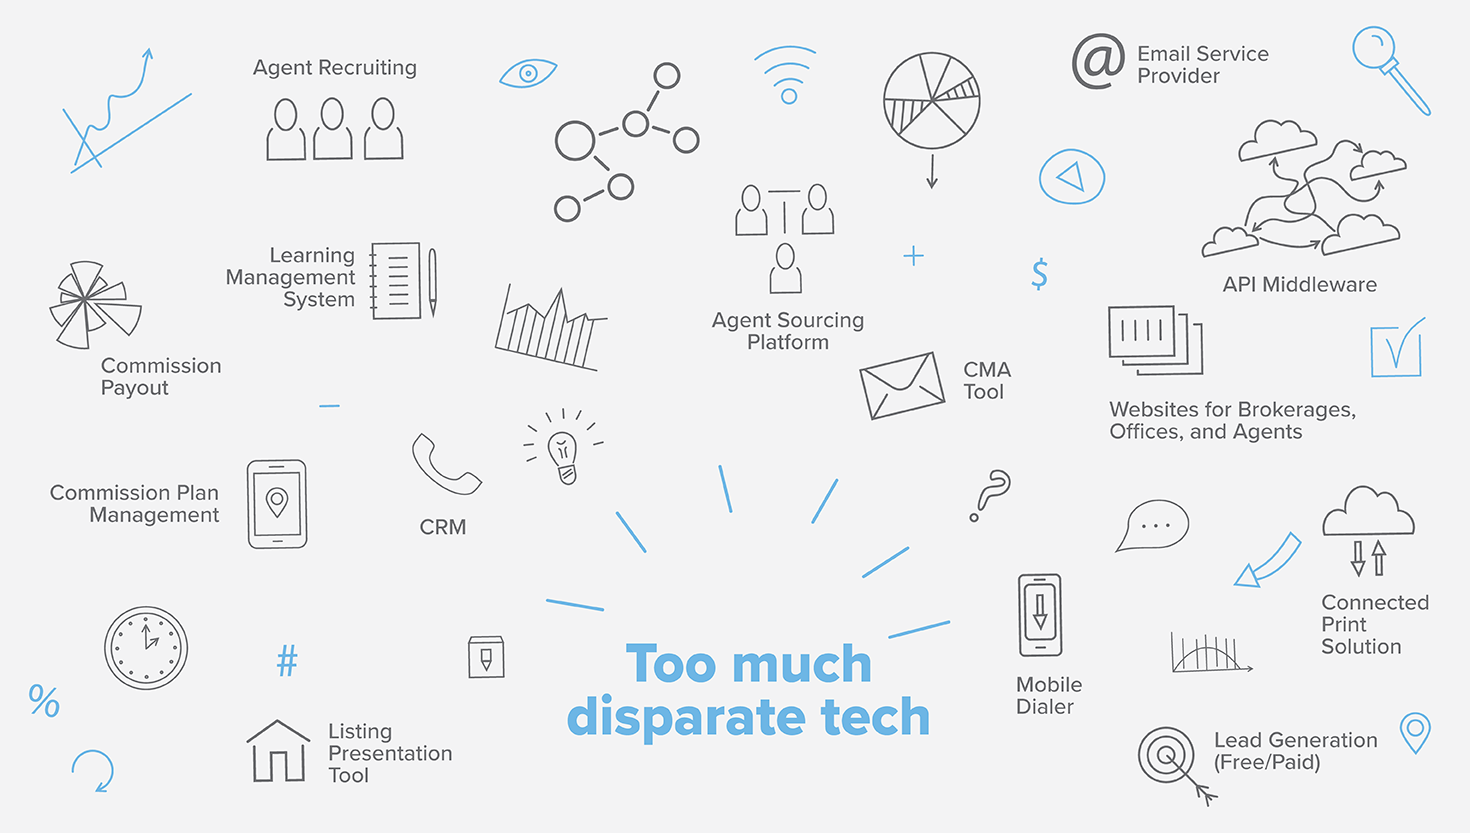 Too much disparate tech